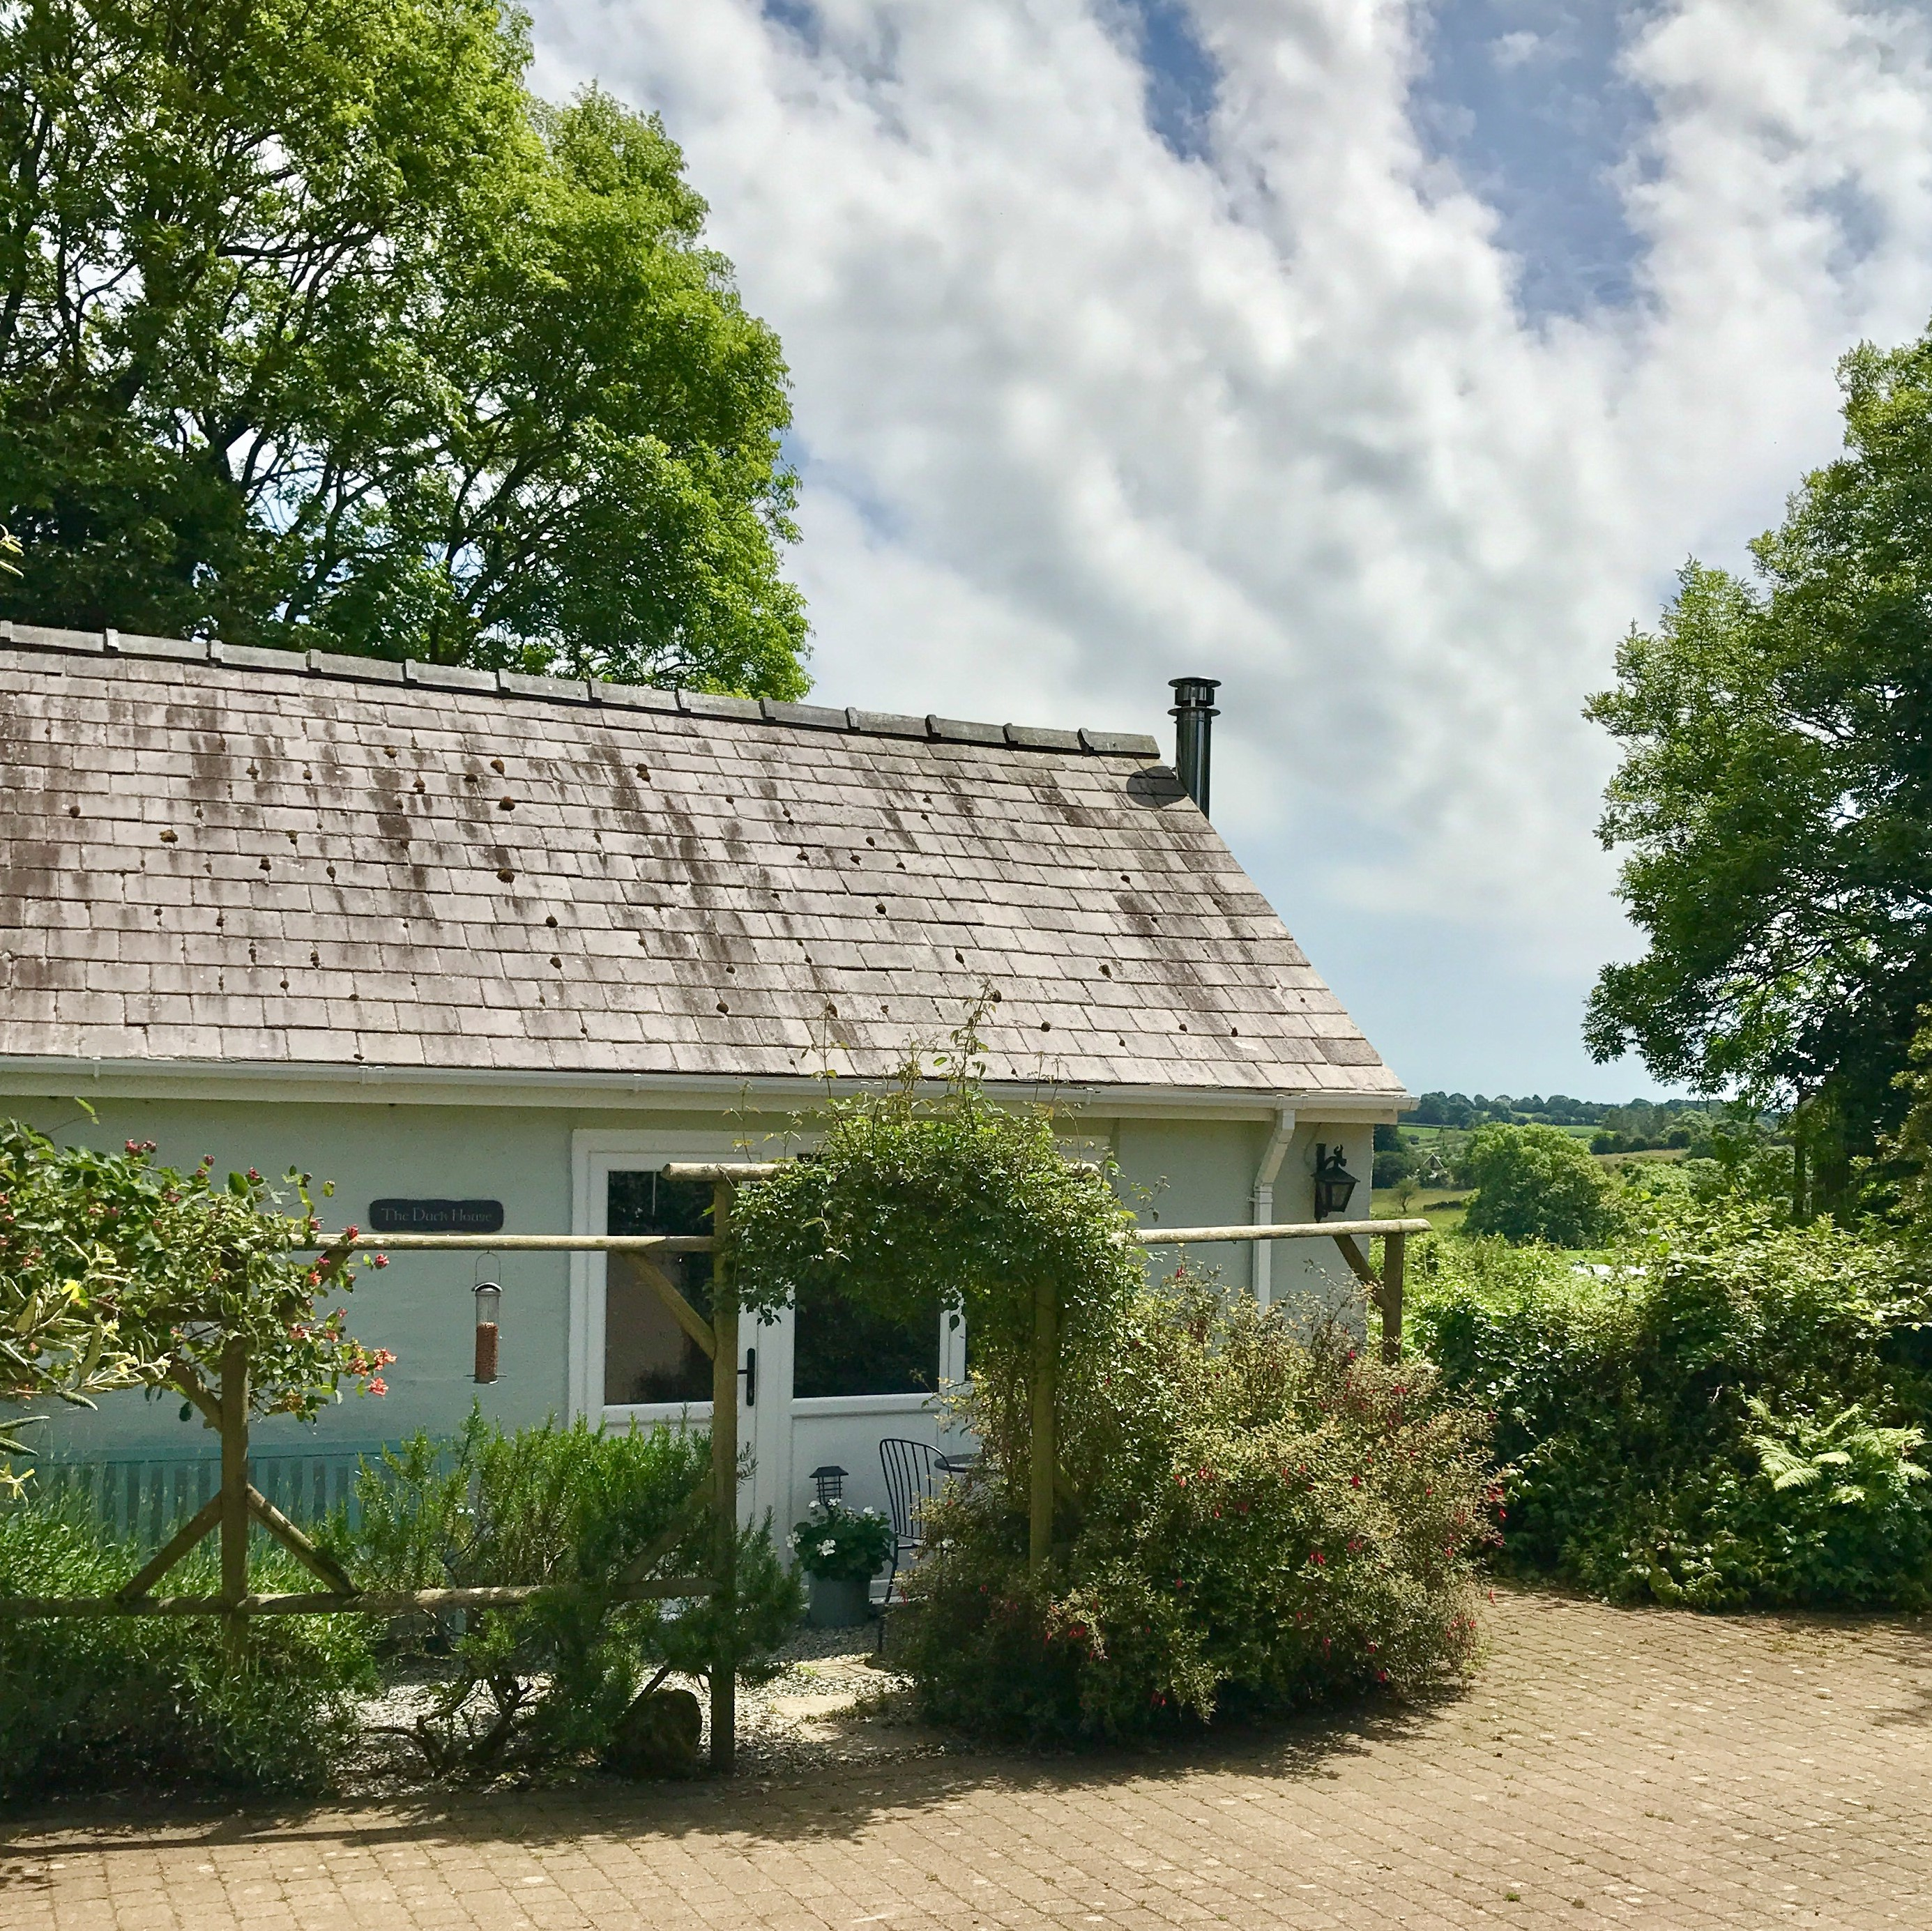 original extremely from of forming spittal building the conversion a traditional lovely cottage newhall part house estate coach century comfortable steading gallery farm spectacular